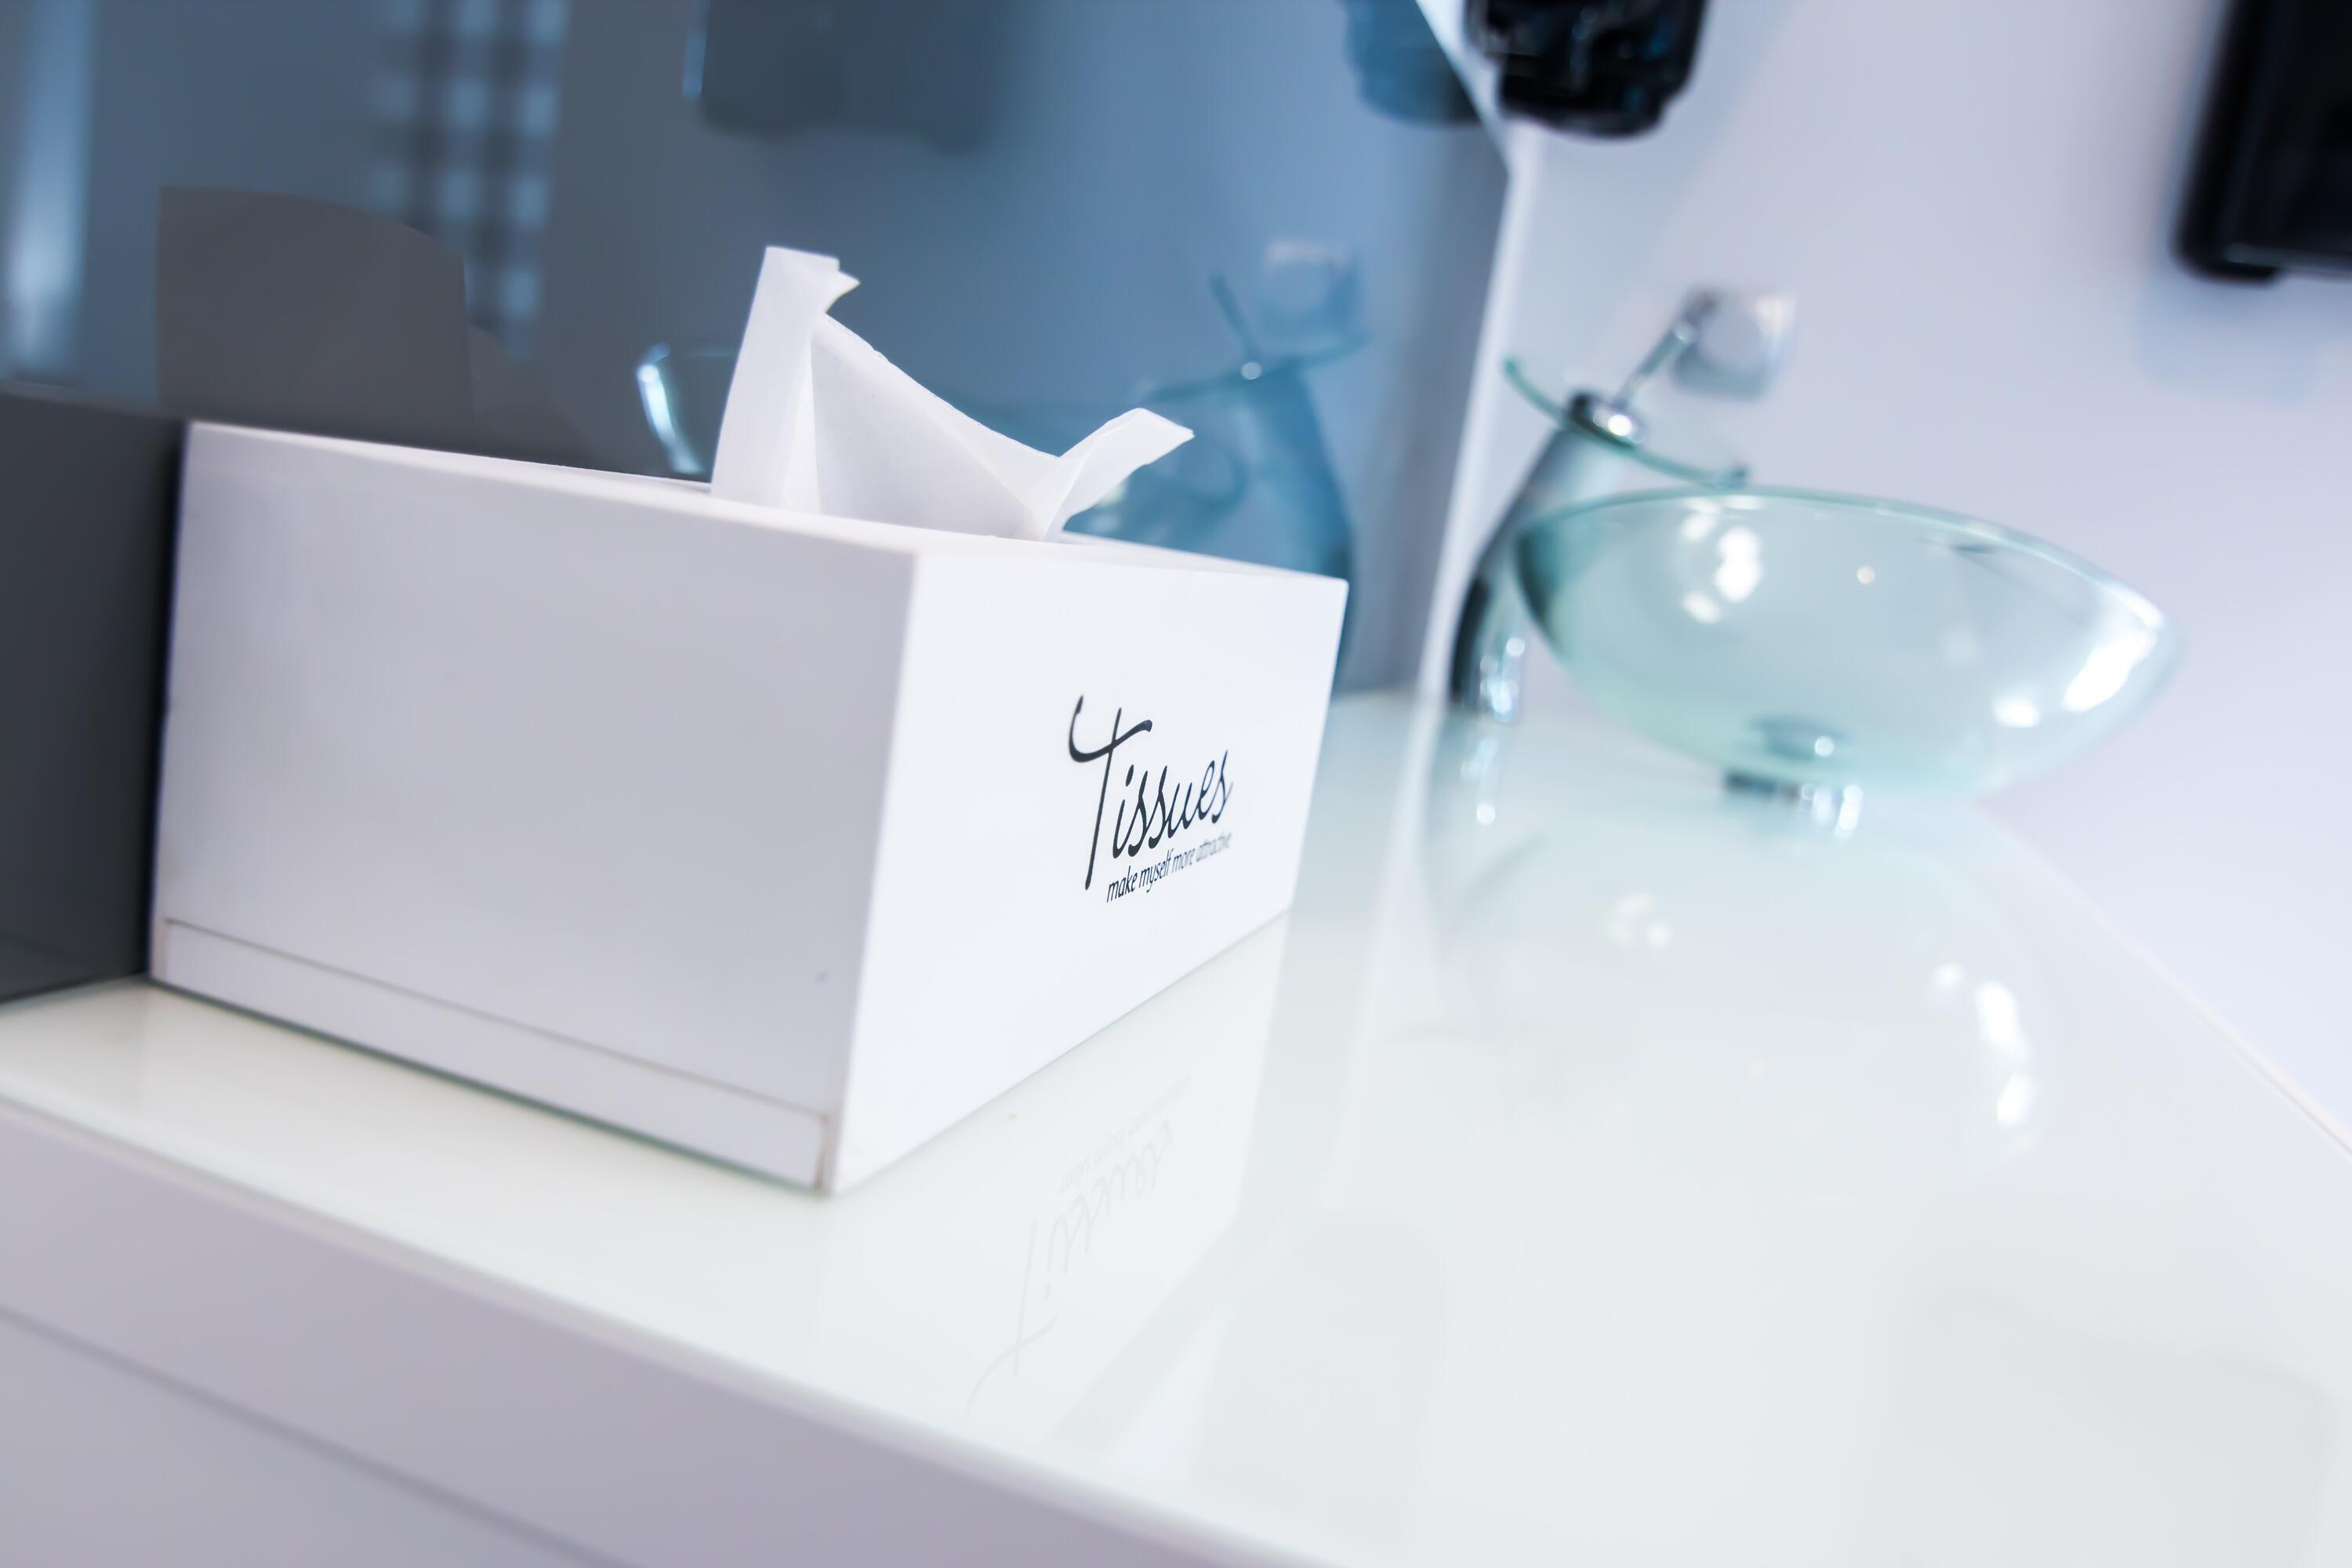 tissue box and sink